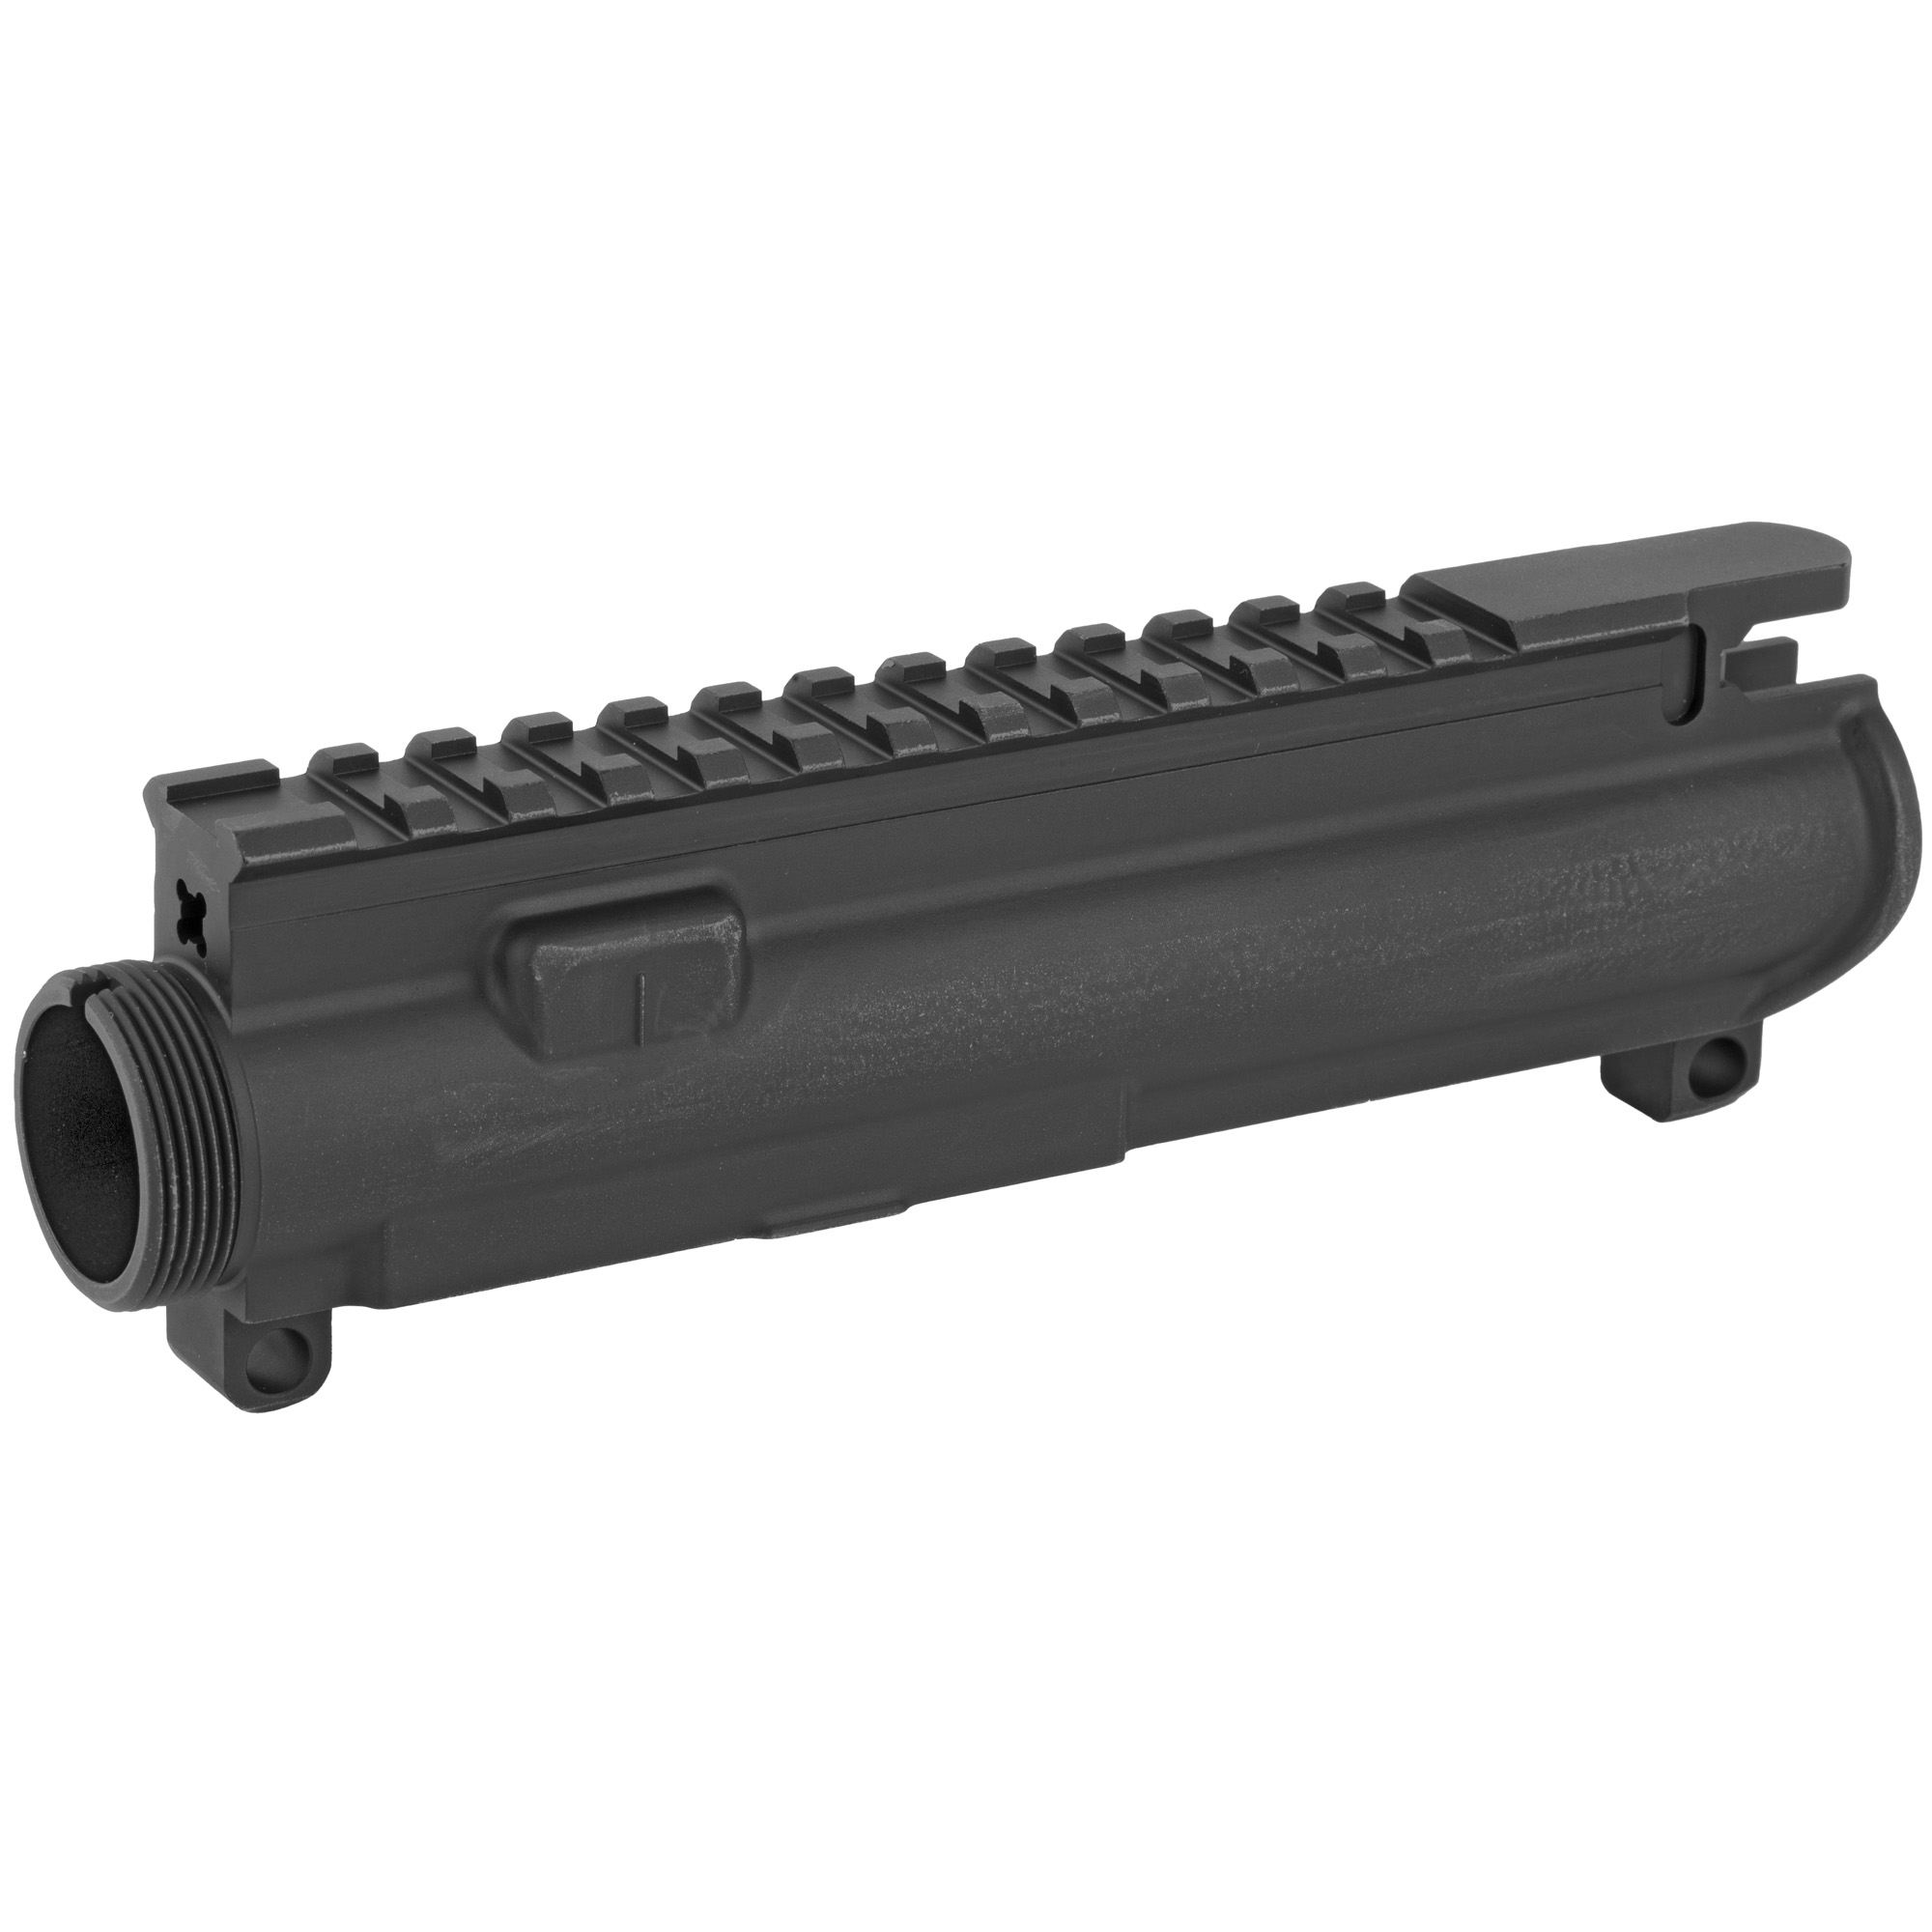 Bad Workhorse Forged Upper Receiver